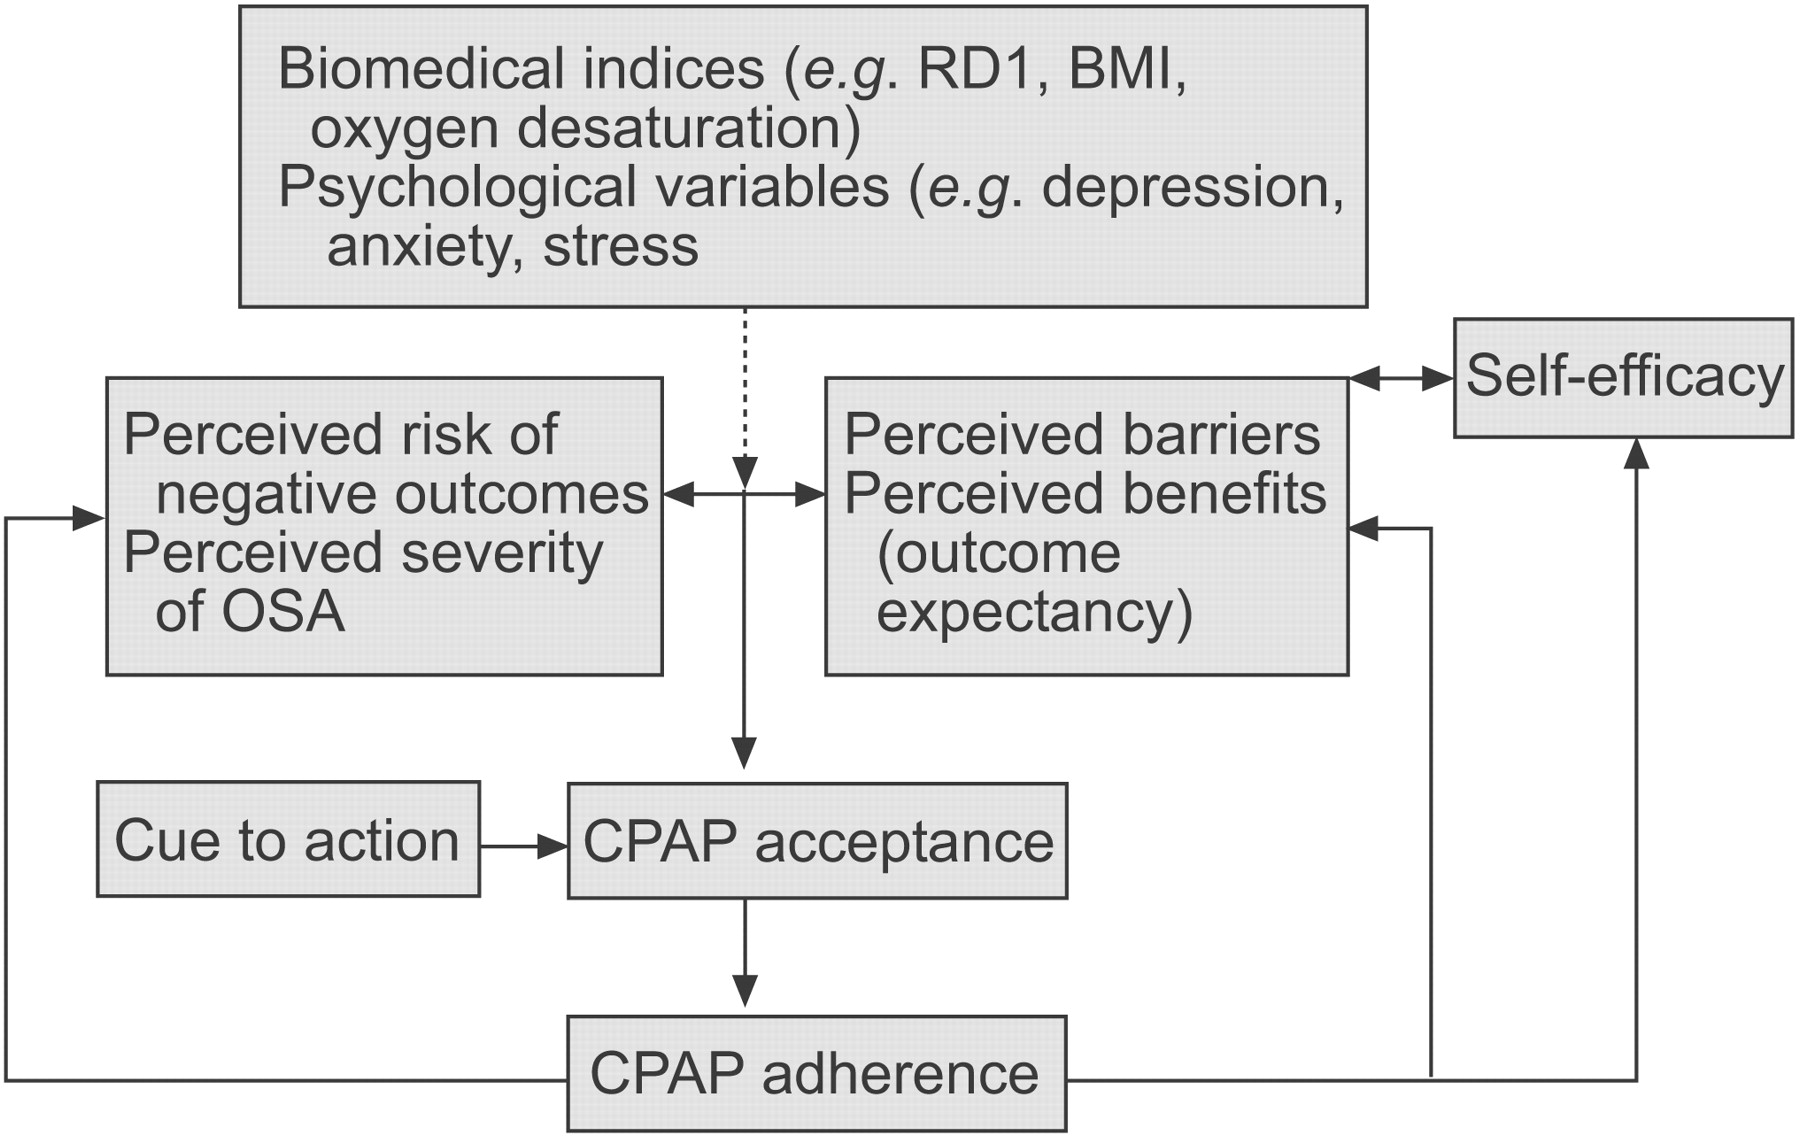 Health Belief Model Predicts Adherence To Cpap Before Experience